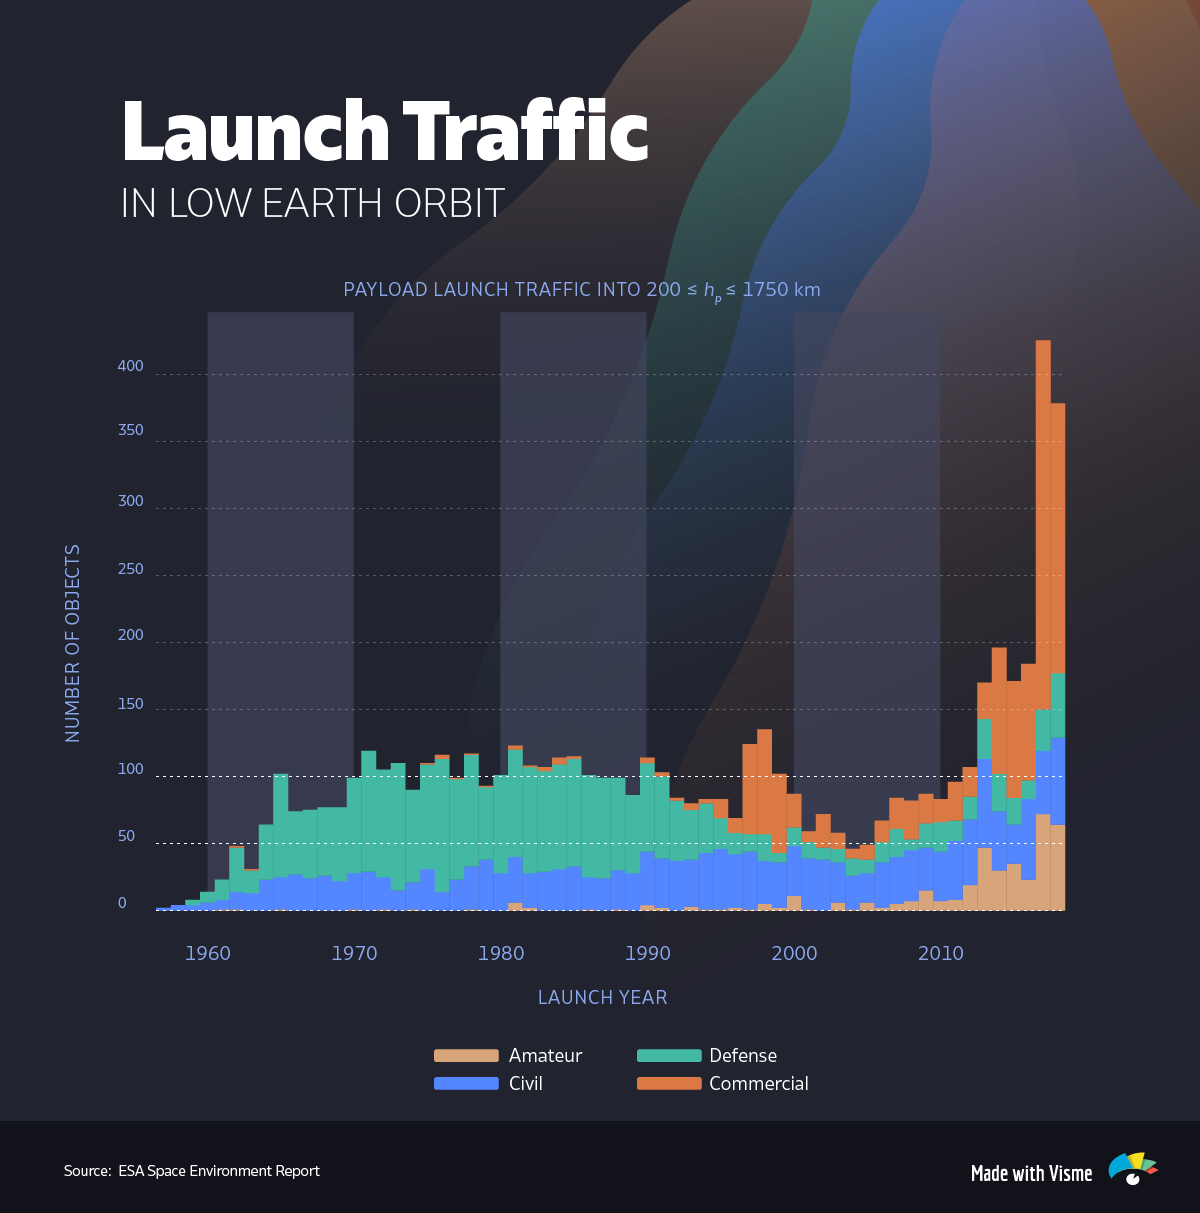 Launch-Traffic-in-Low-Earth-Orbit-infographic